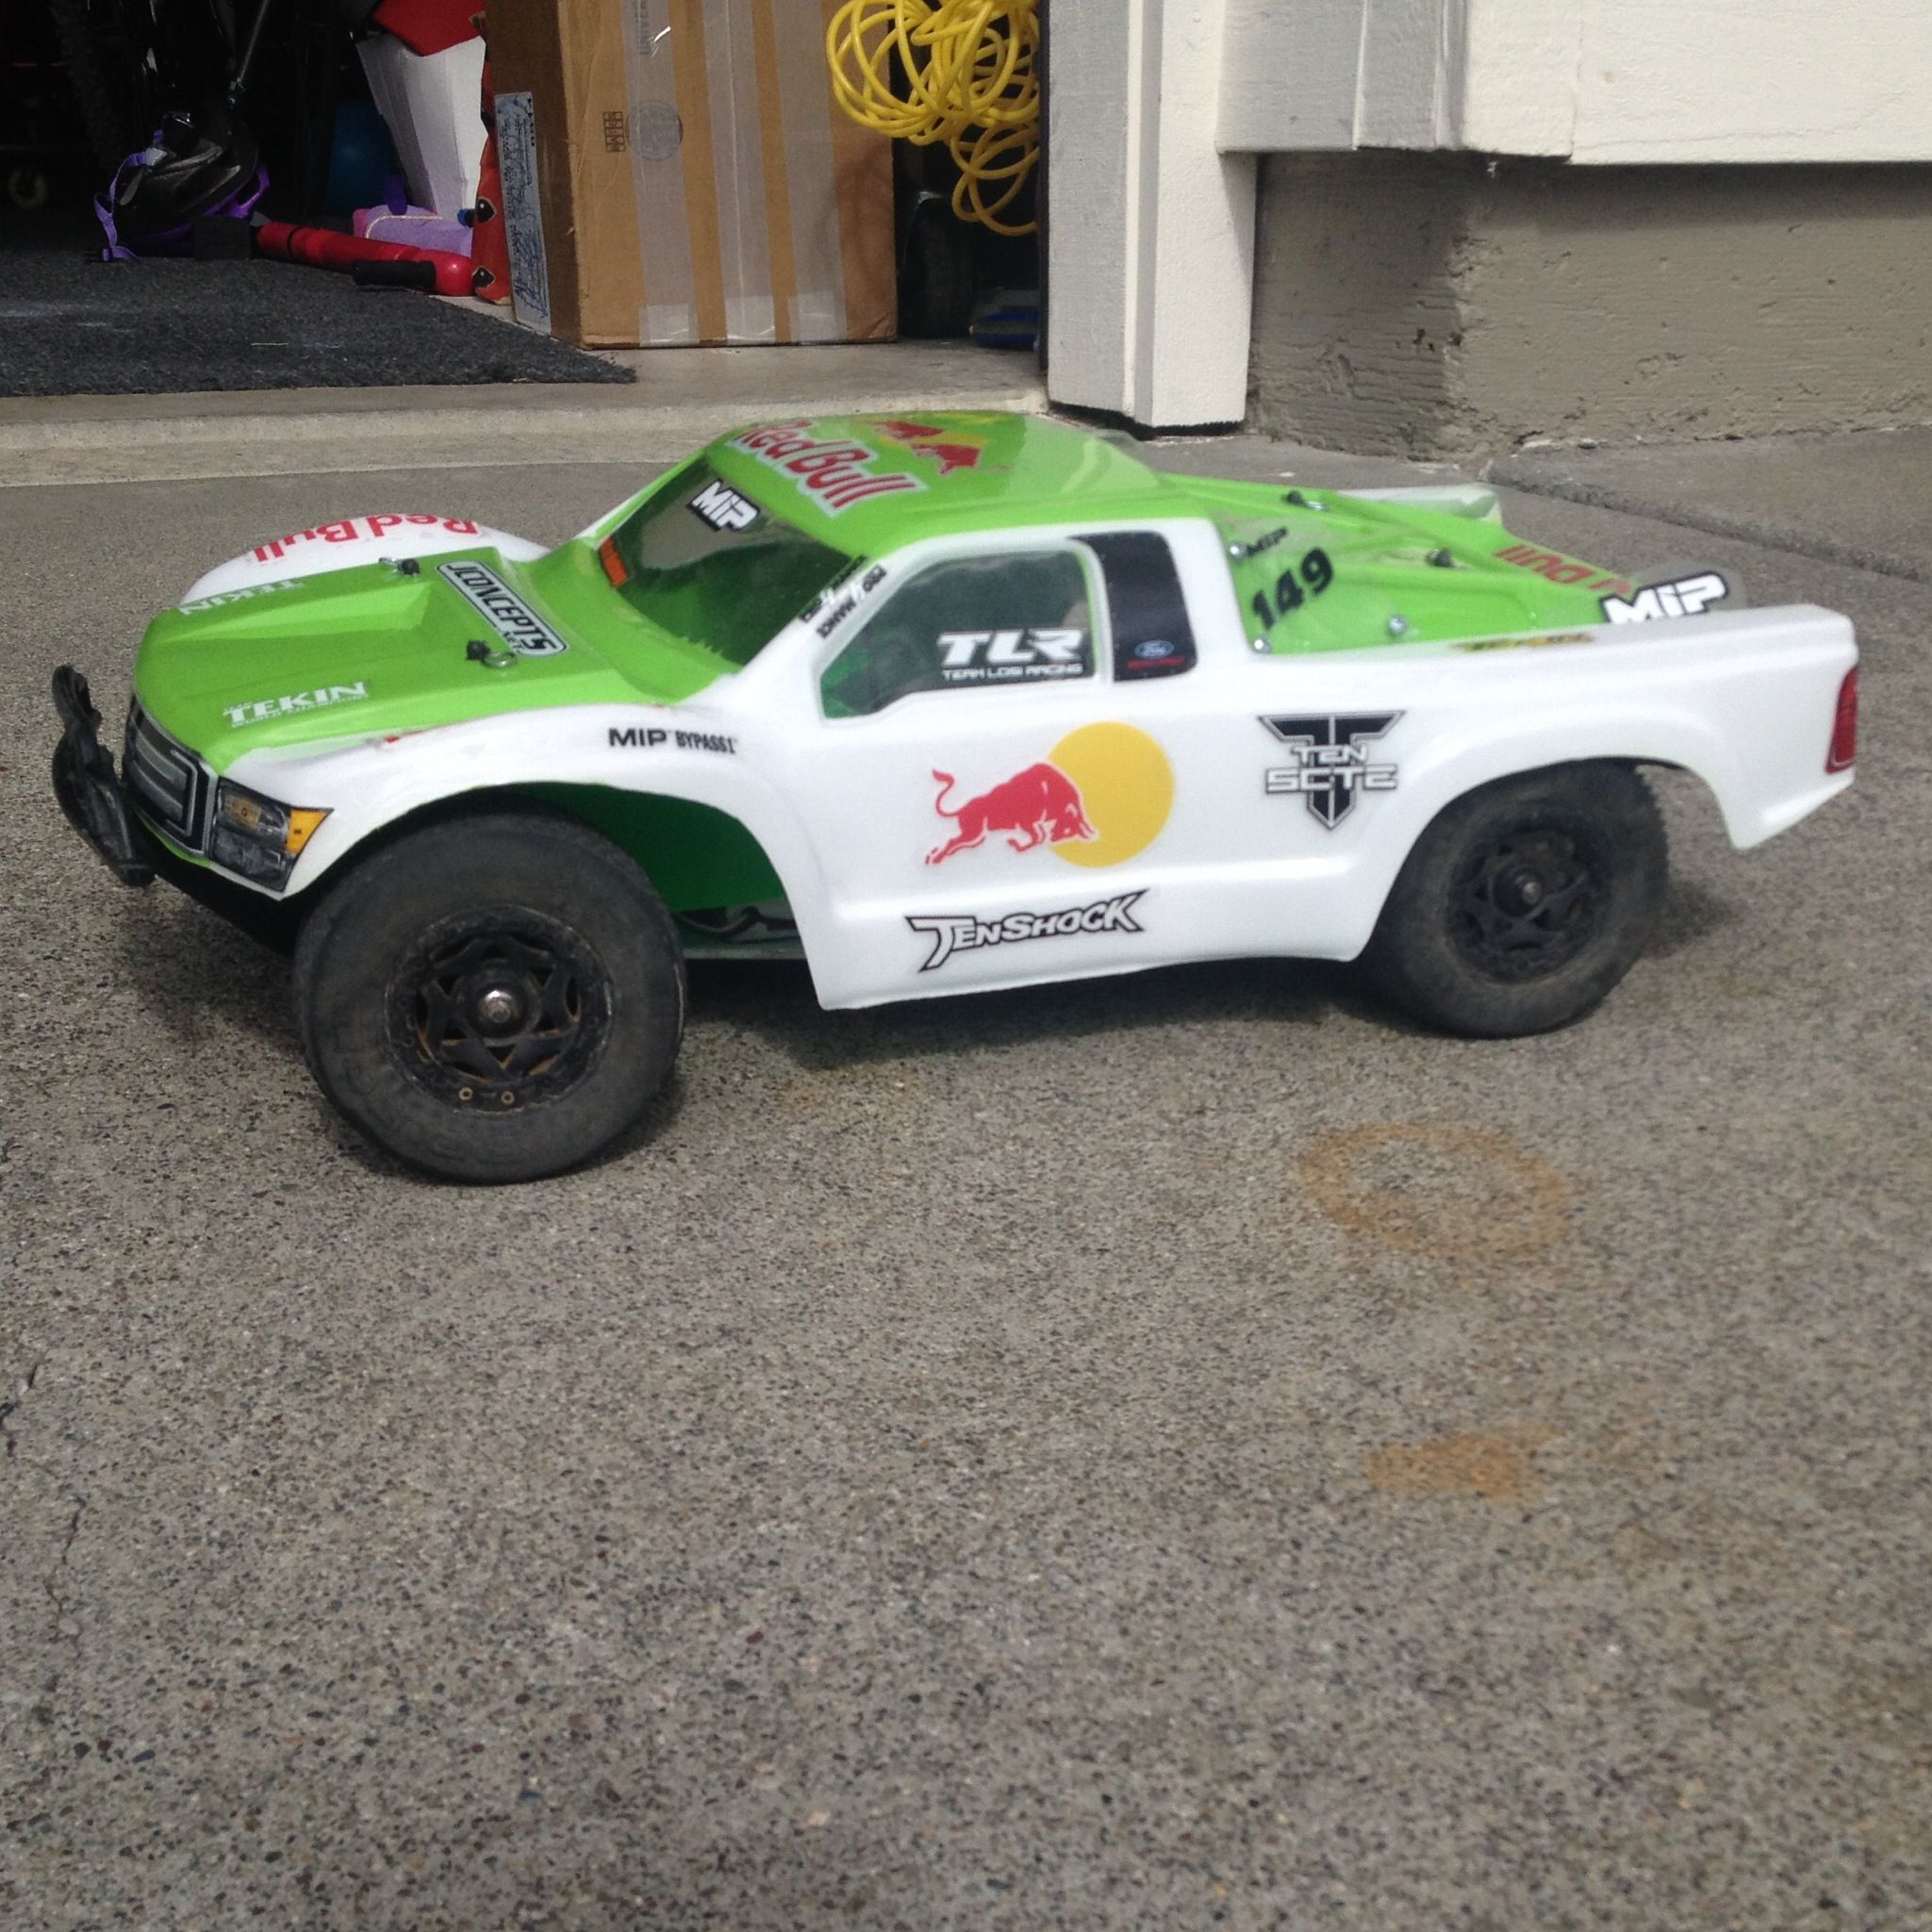 PLASTIDIP Painted Jconcepts F250 short course body on Losi SCTE W Pro4mance package